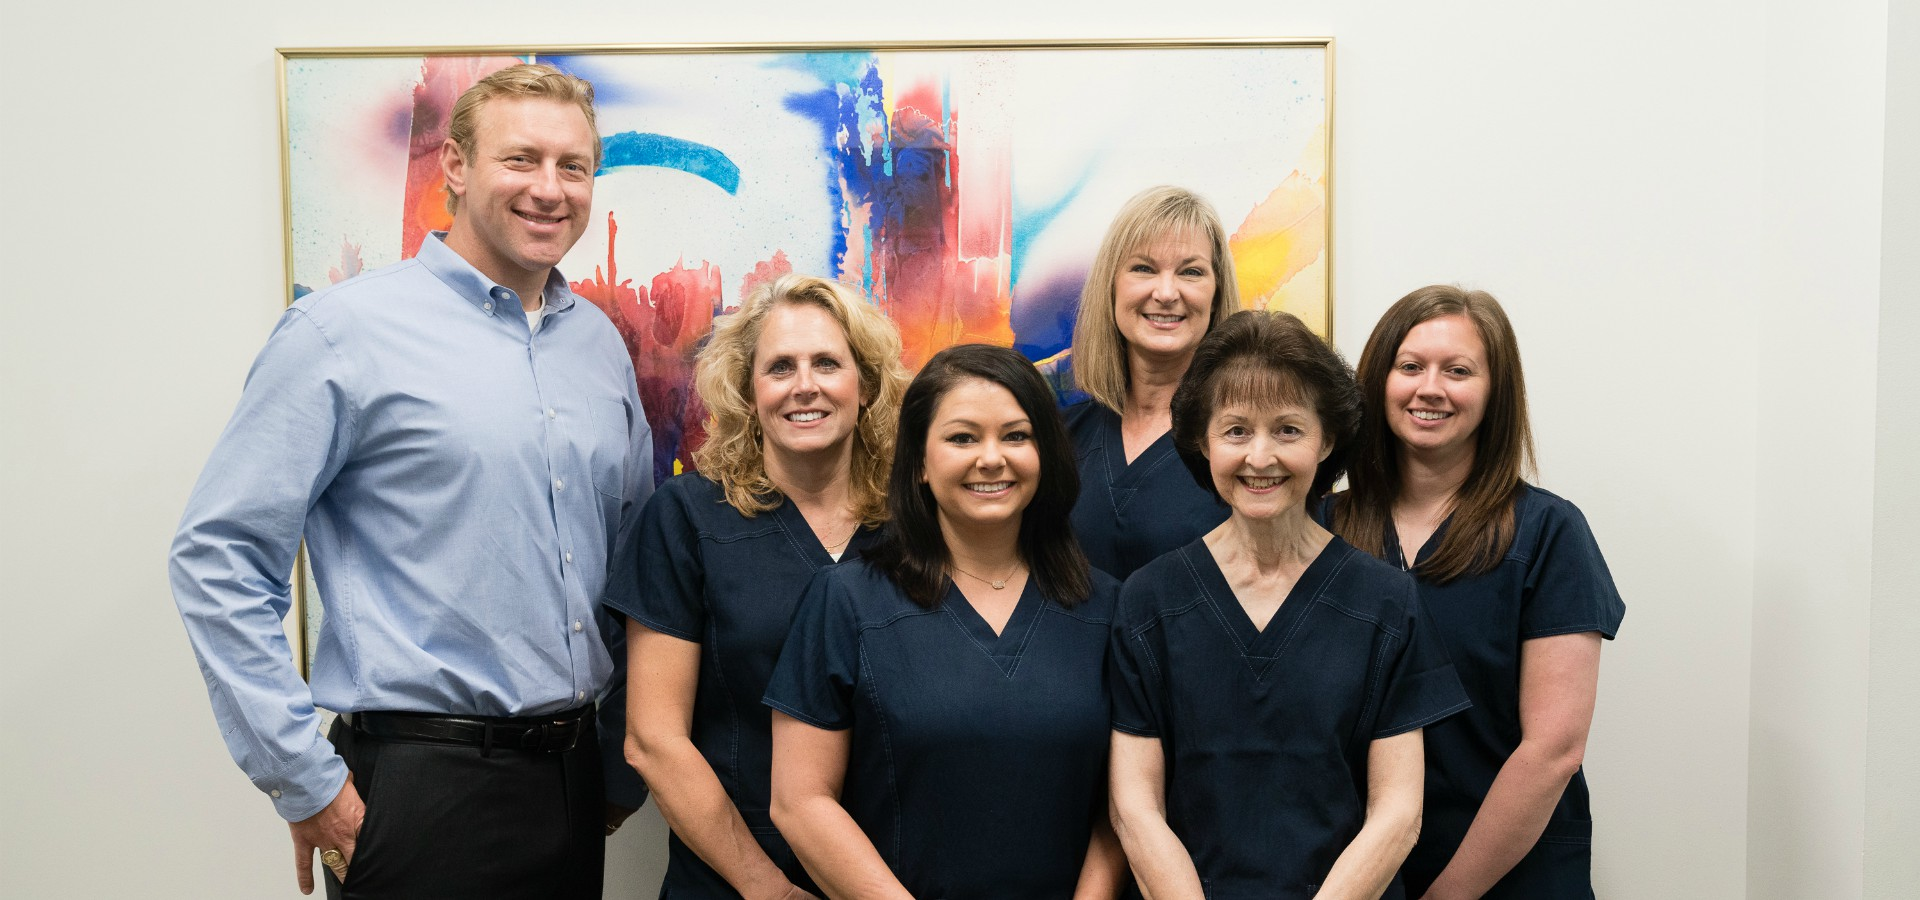 The staff at Durham DDS.